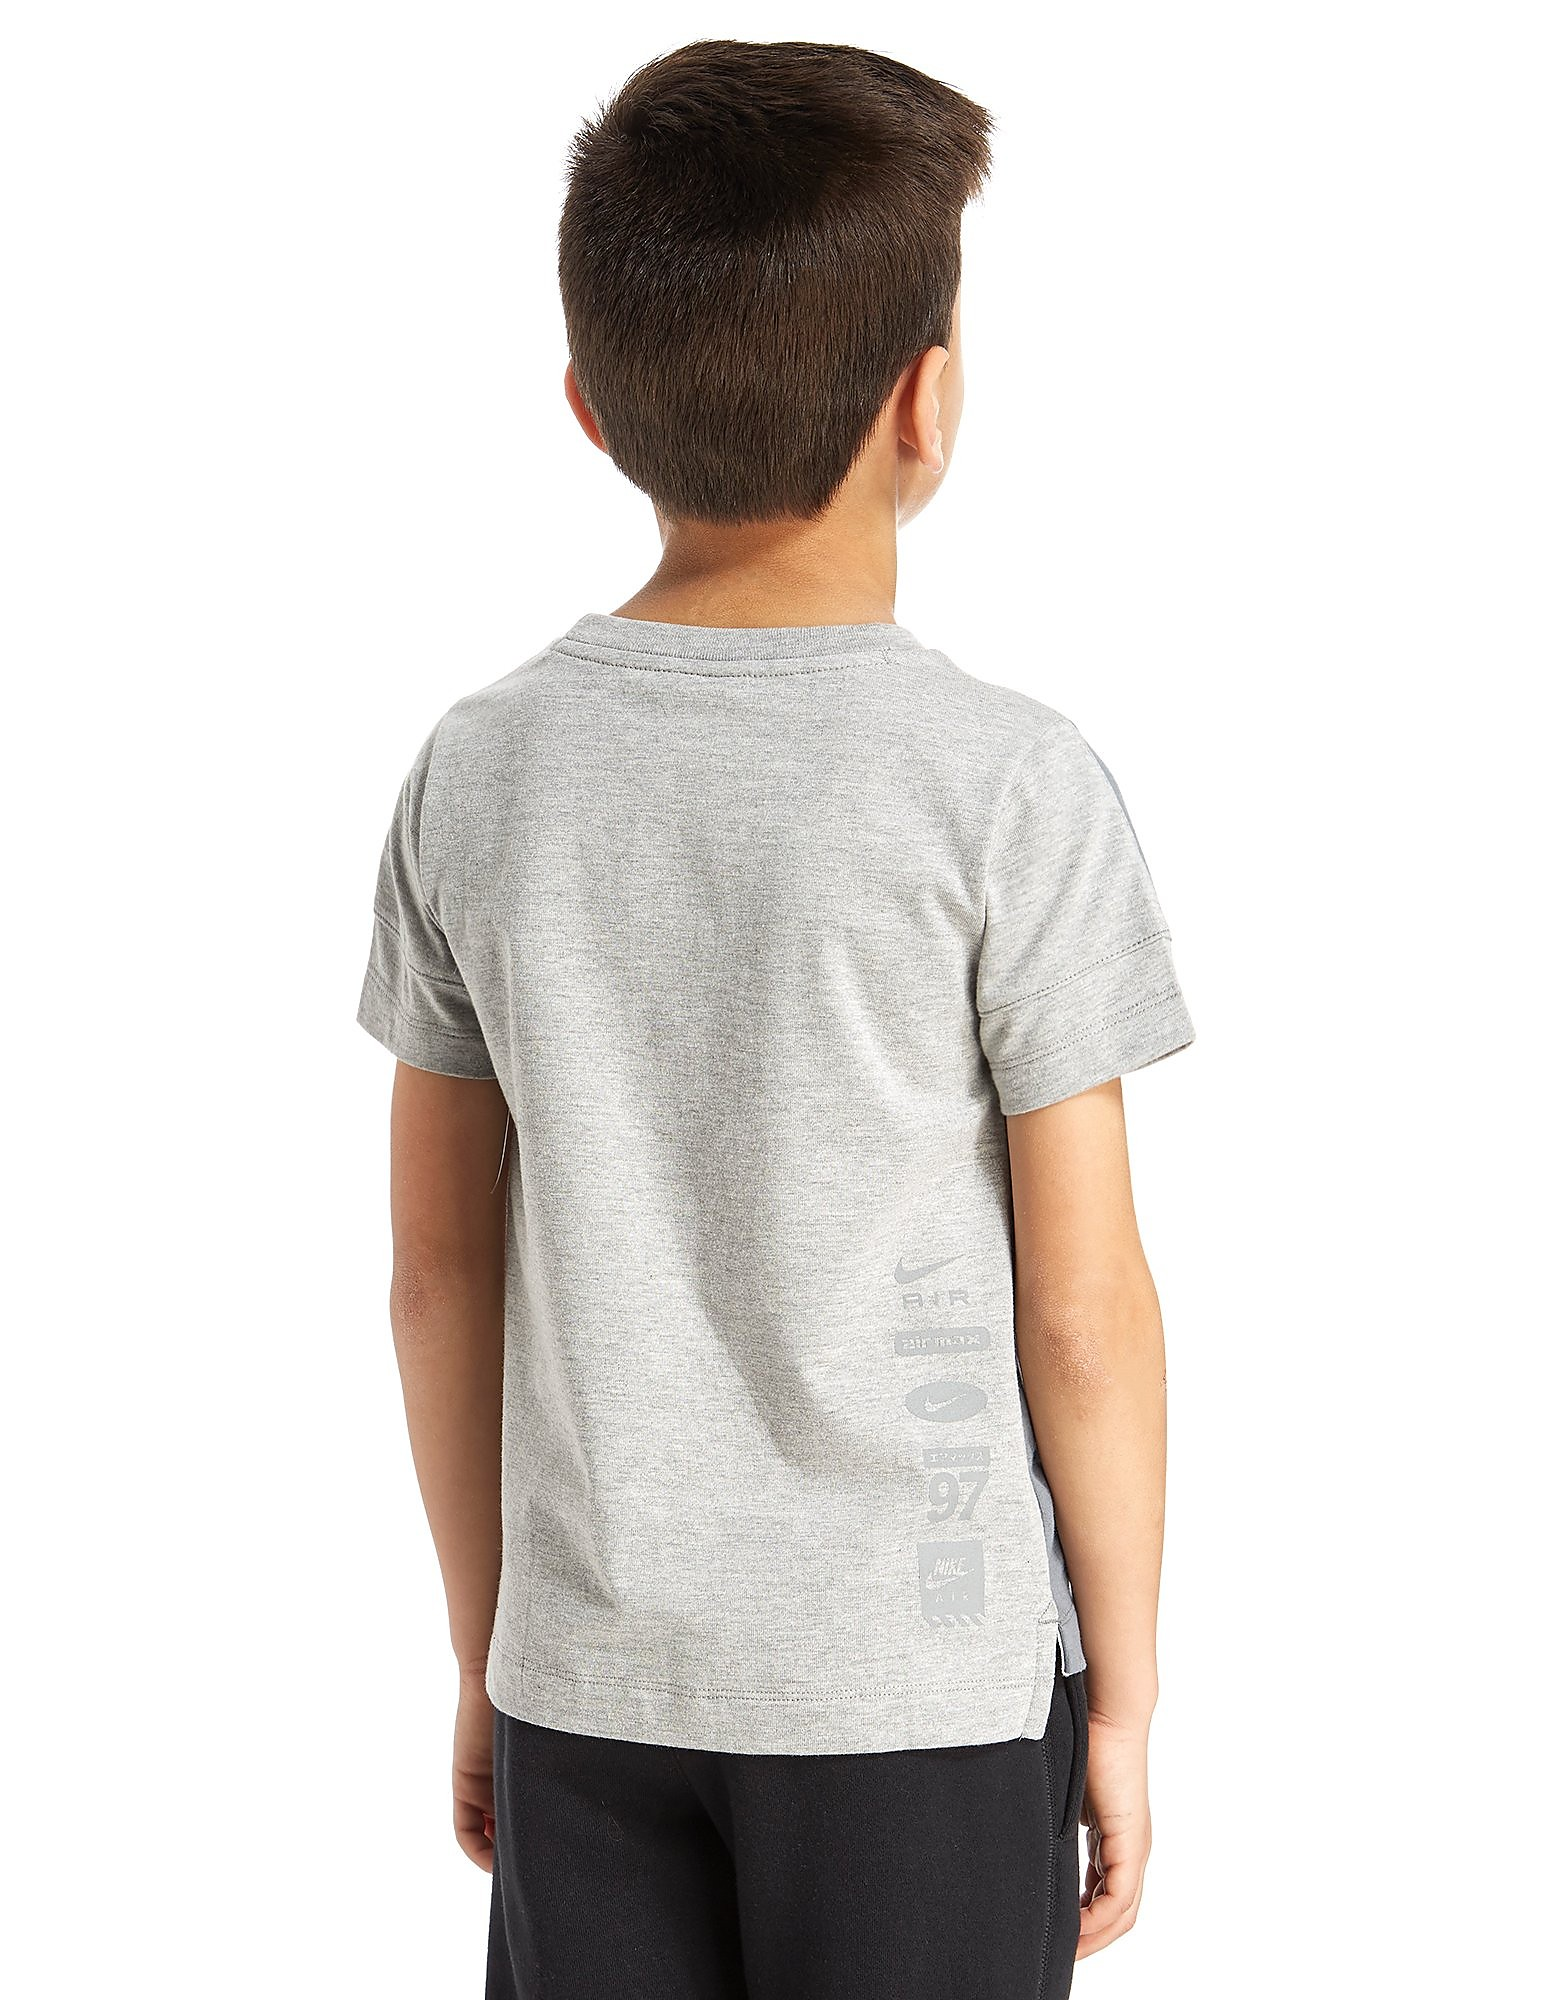 Nike Air T-shirt enfant